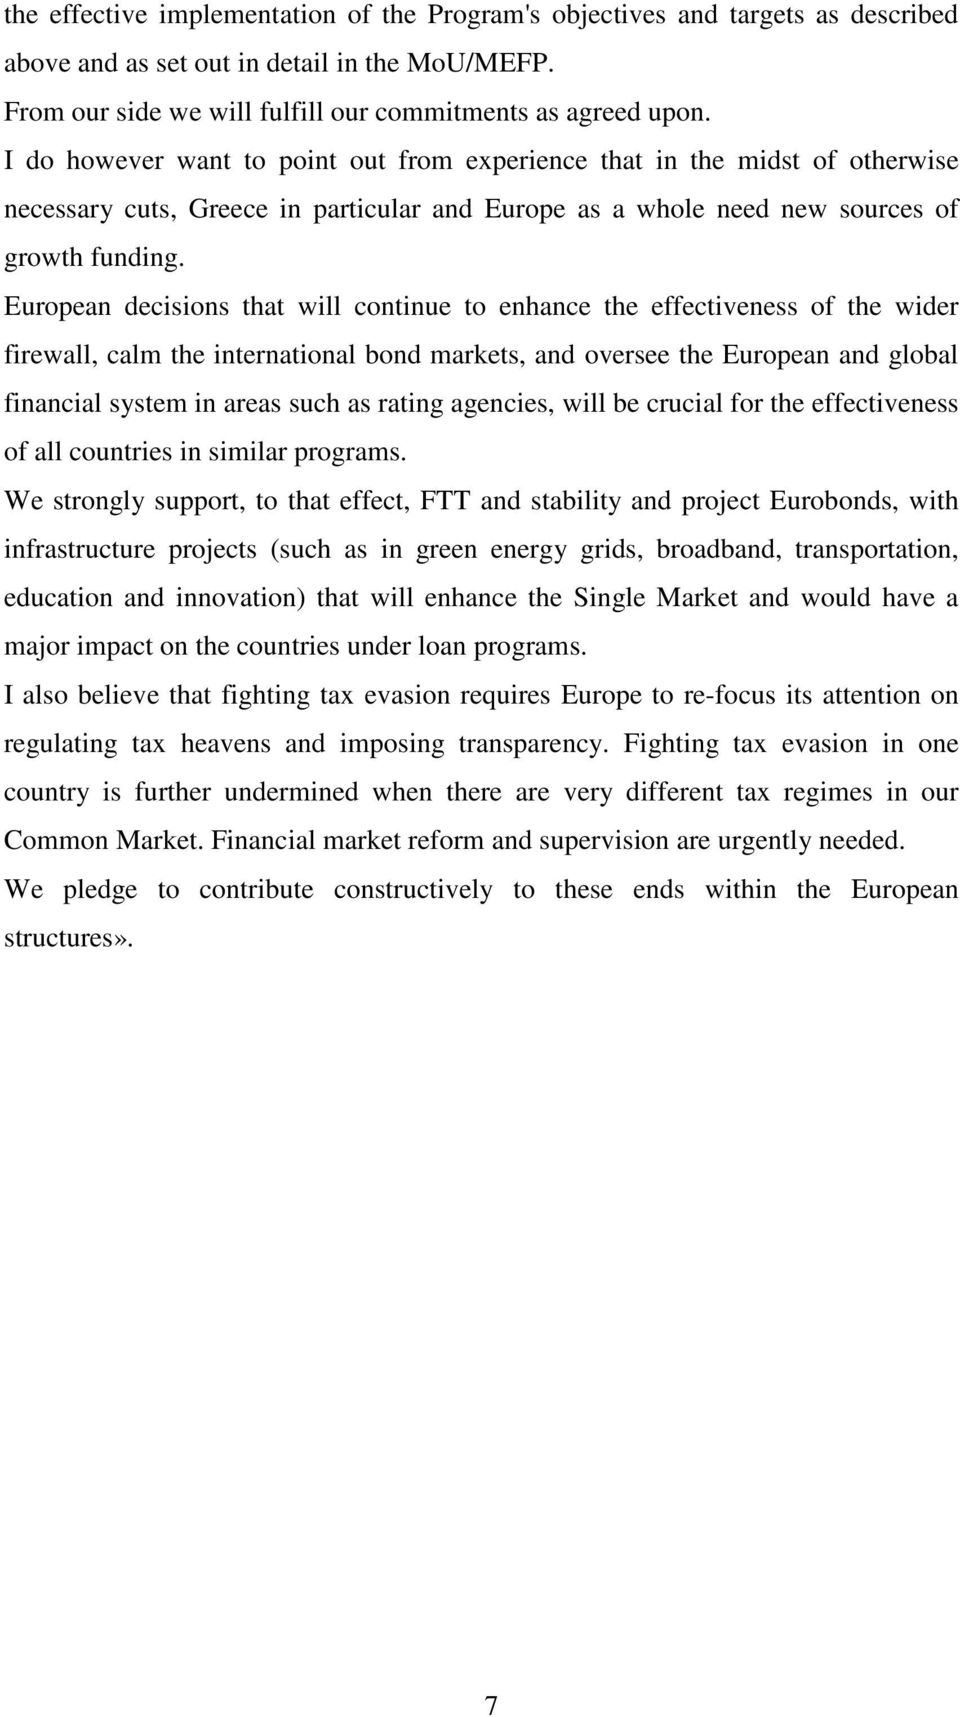 European decisions that will continue to enhance the effectiveness of the wider firewall, calm the international bond markets, and oversee the European and global financial system in areas such as